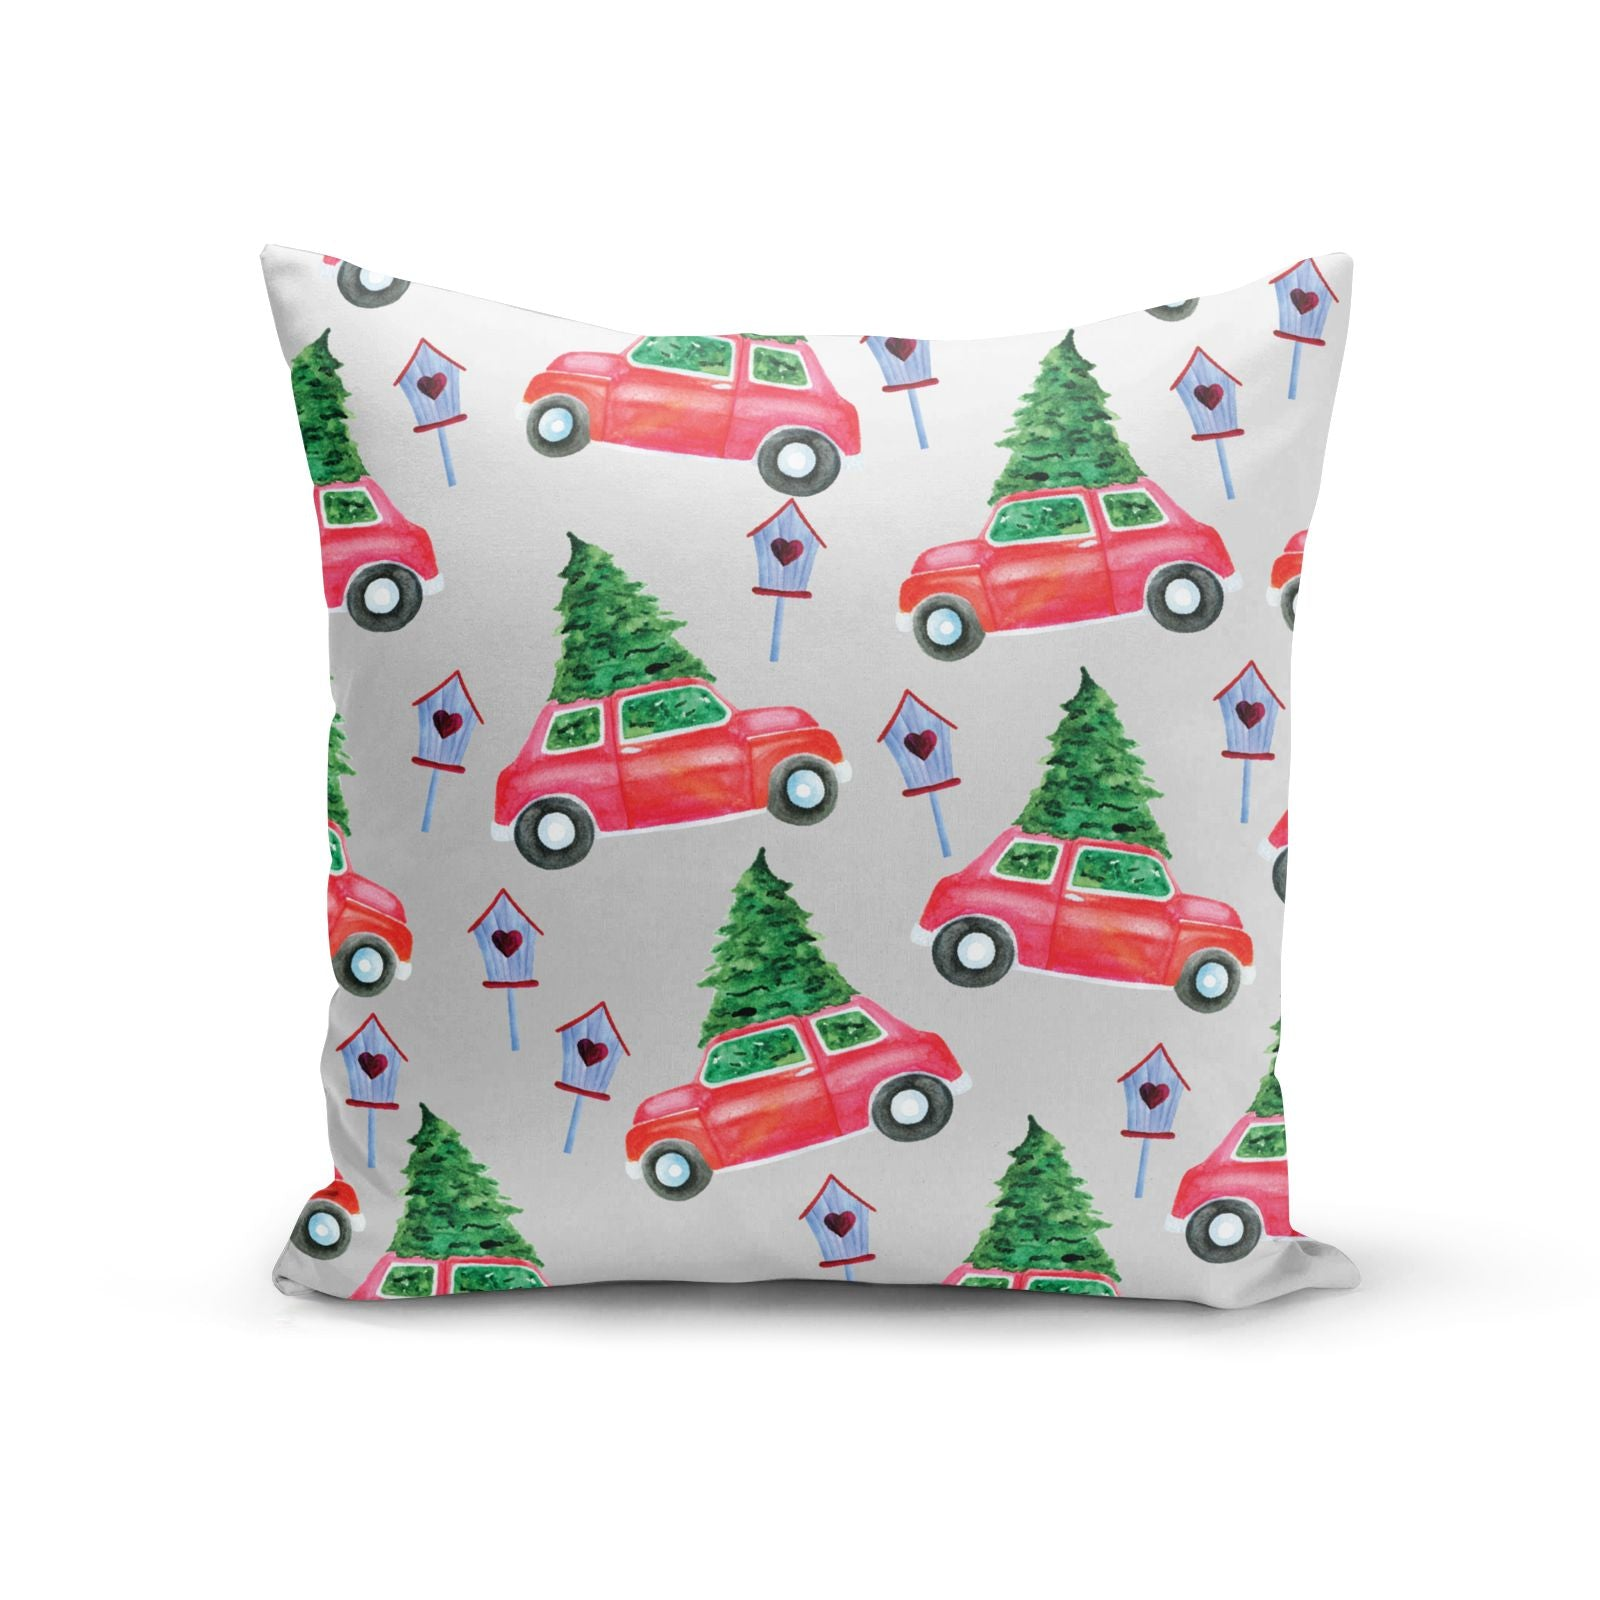 Driving home for Christmas Cotton Cushion